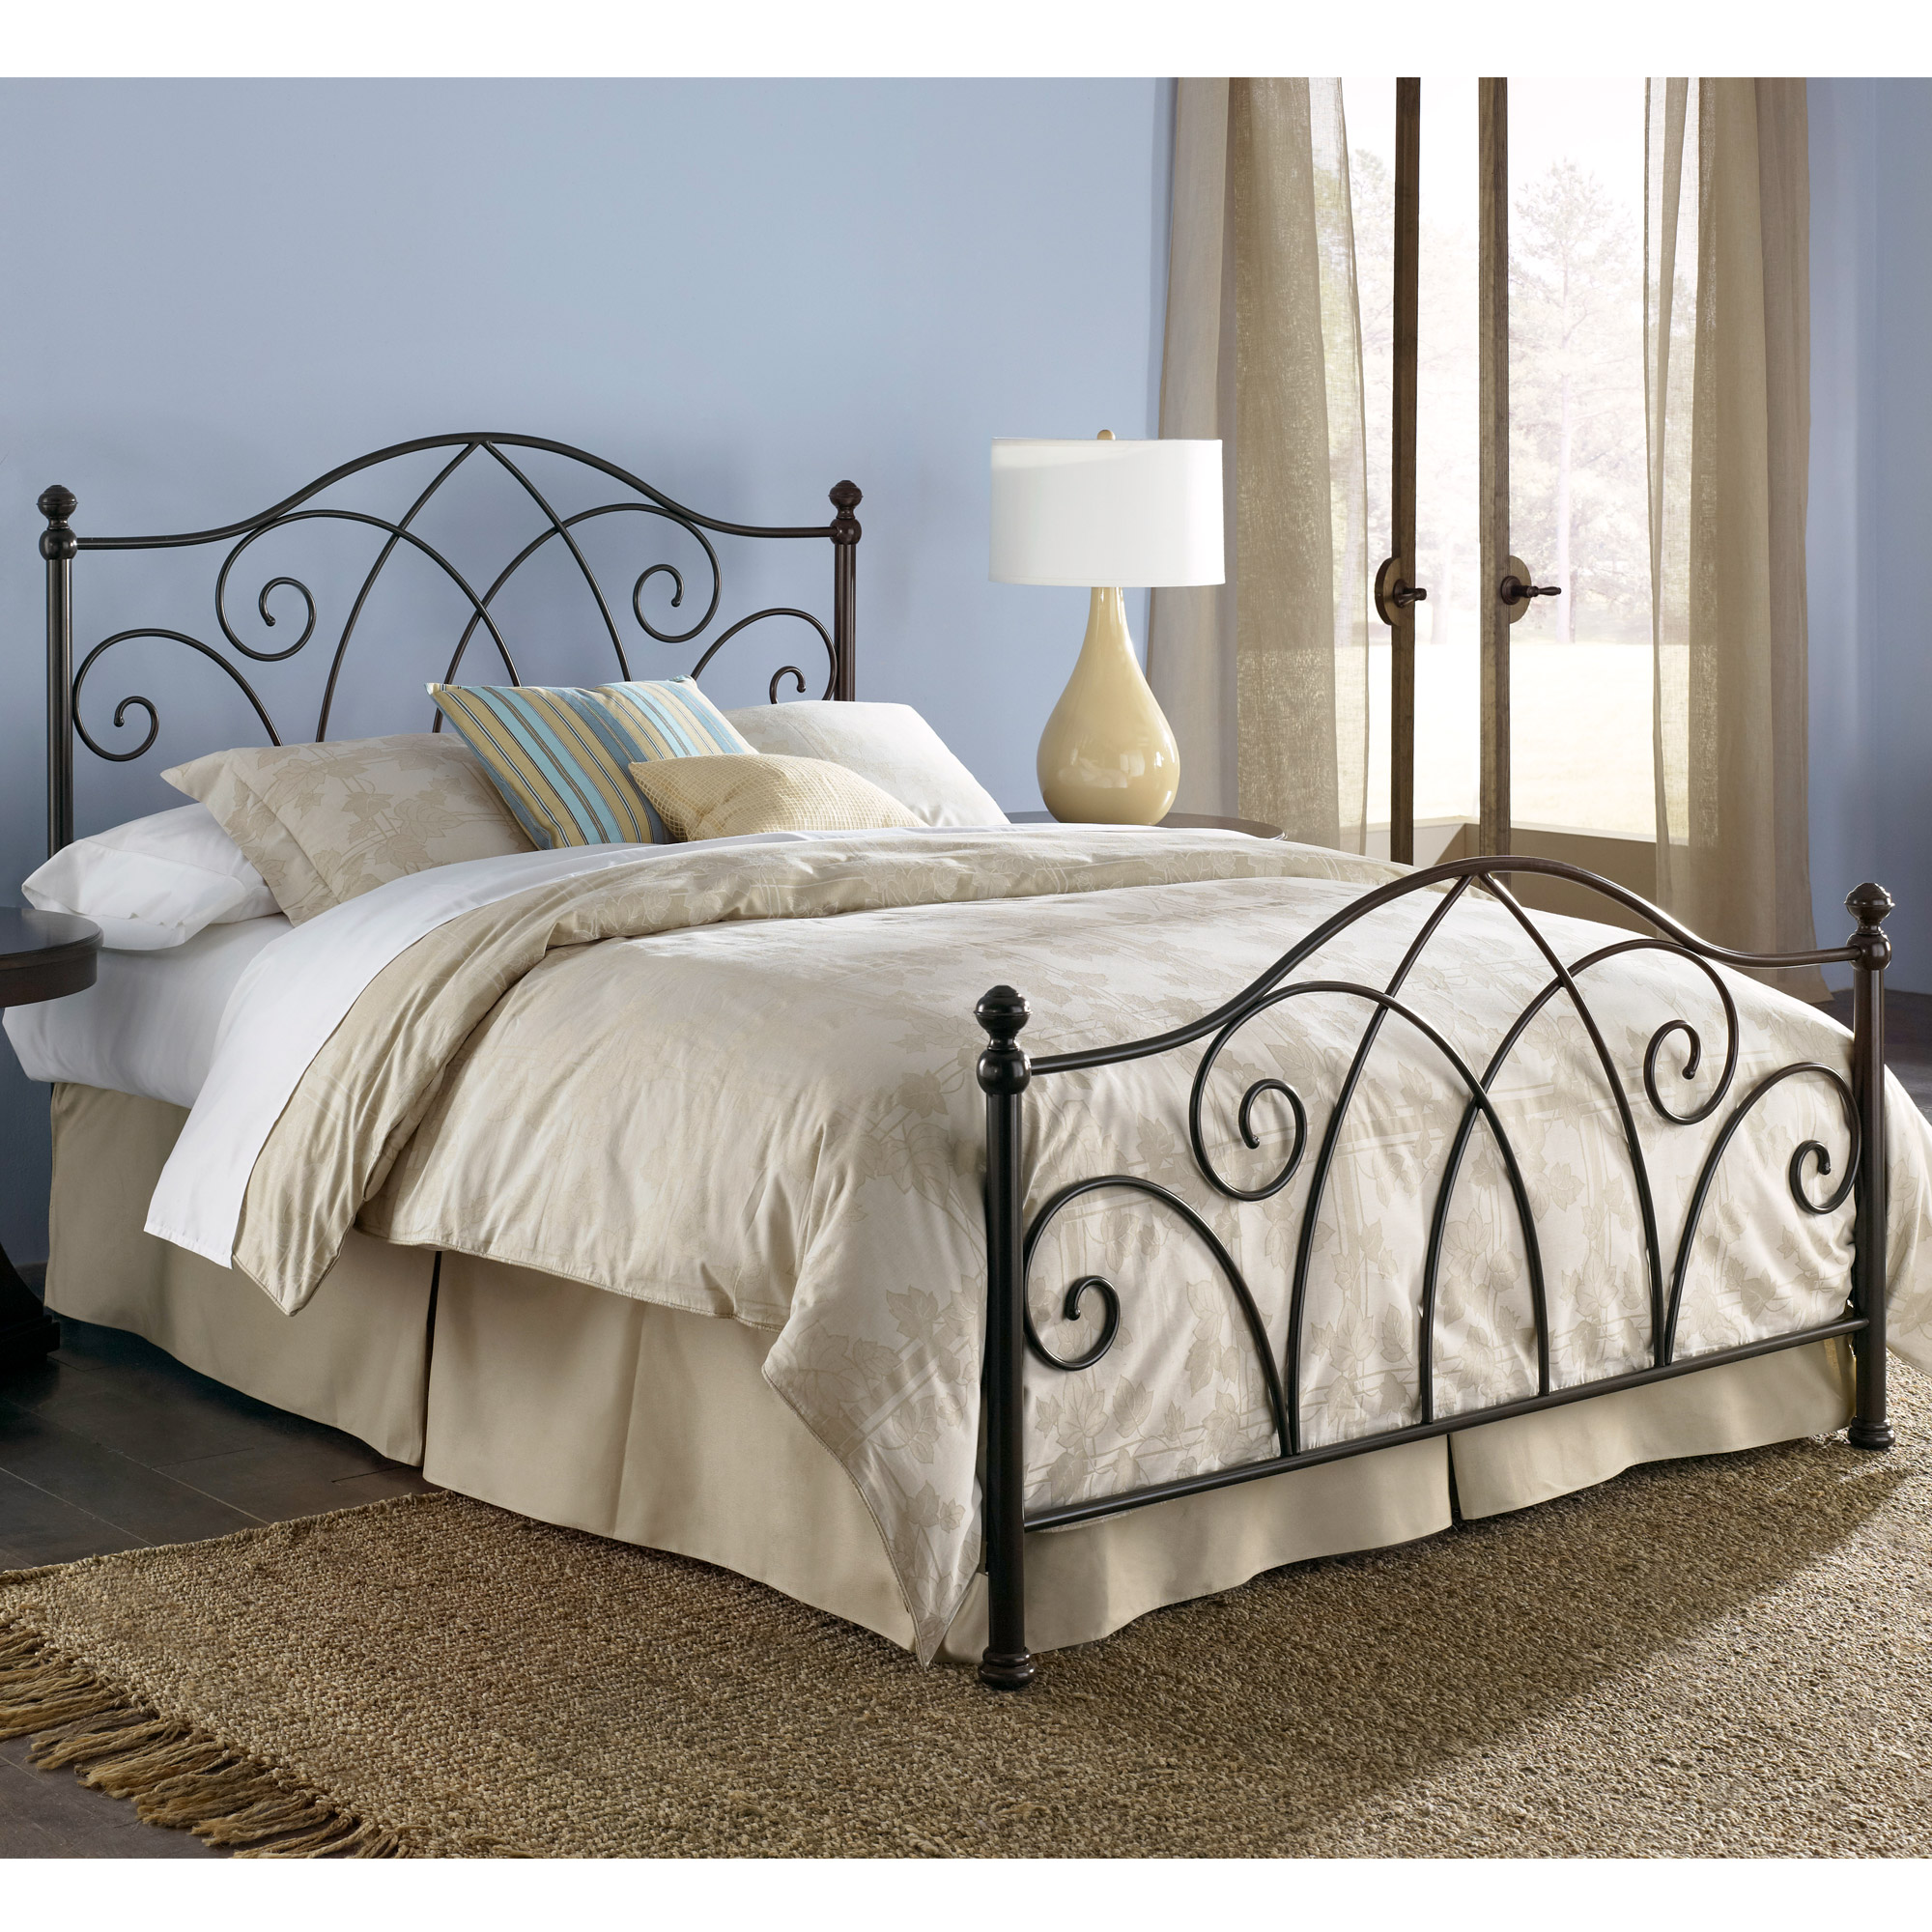 frames iron bedroom king headboards rod antique furniture luxury luxry for bed twin decor white floral black queen platform headboard